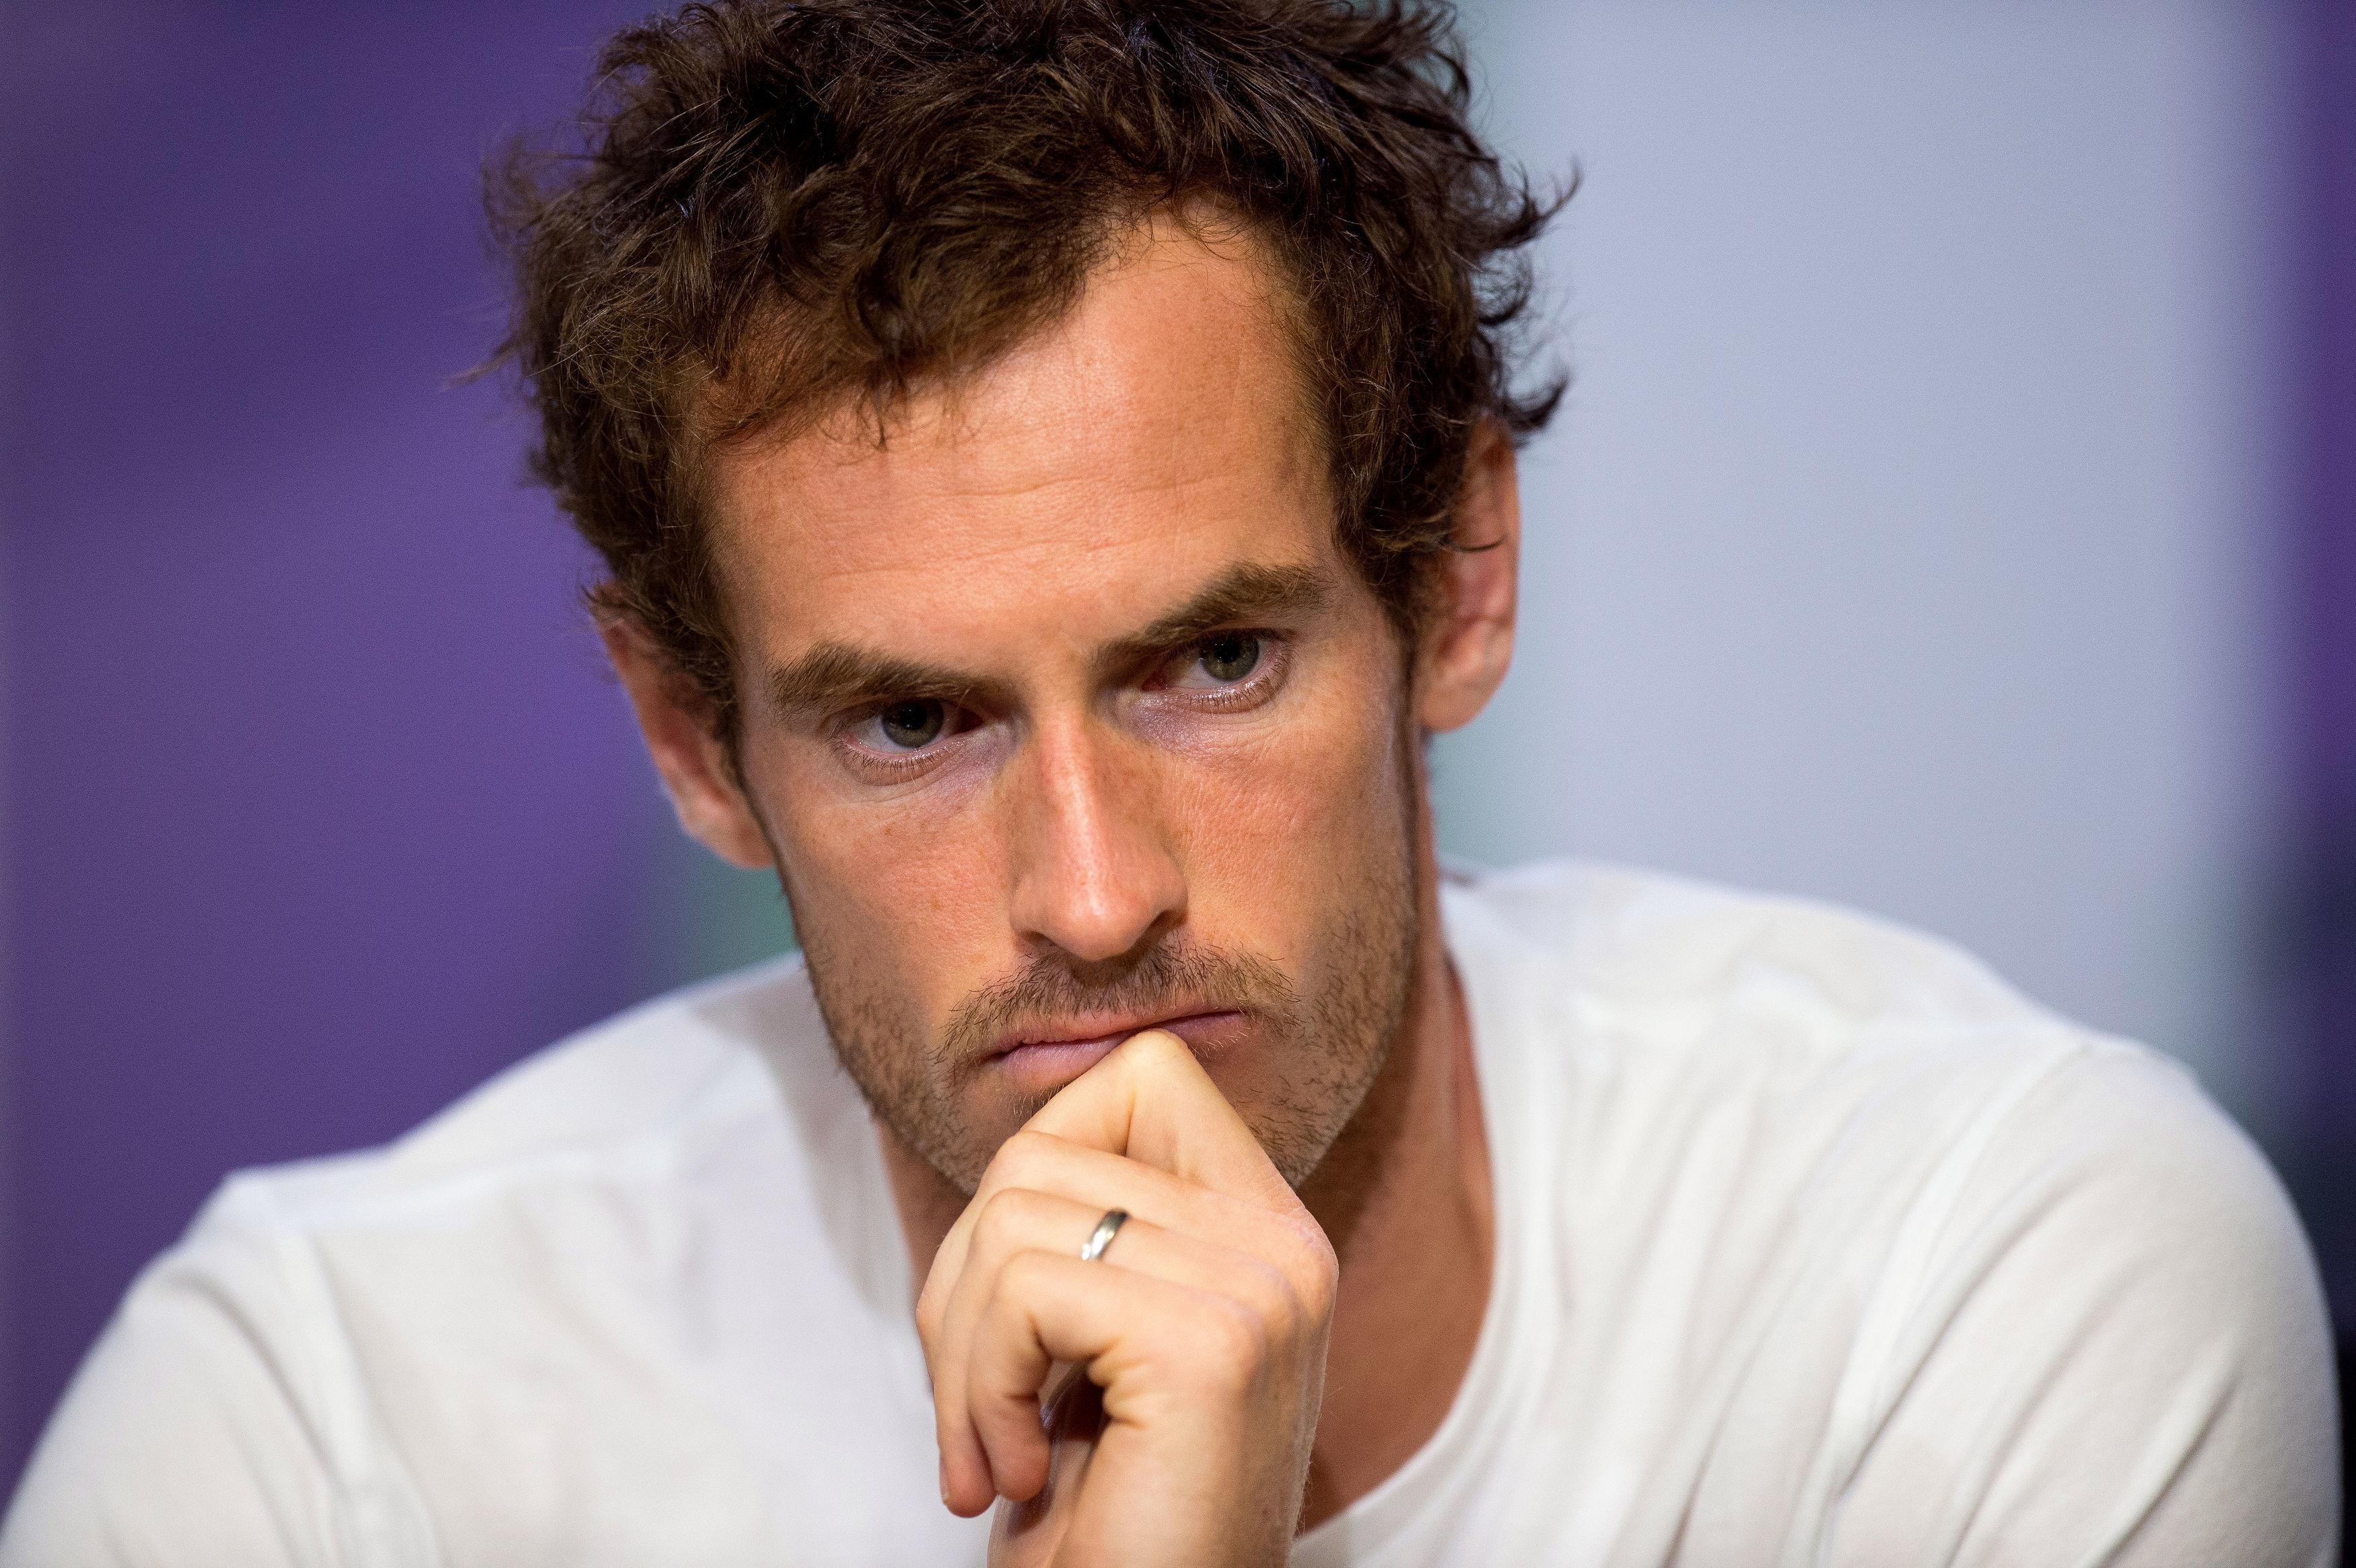 Andy Murray will end his 2018 season after the China events